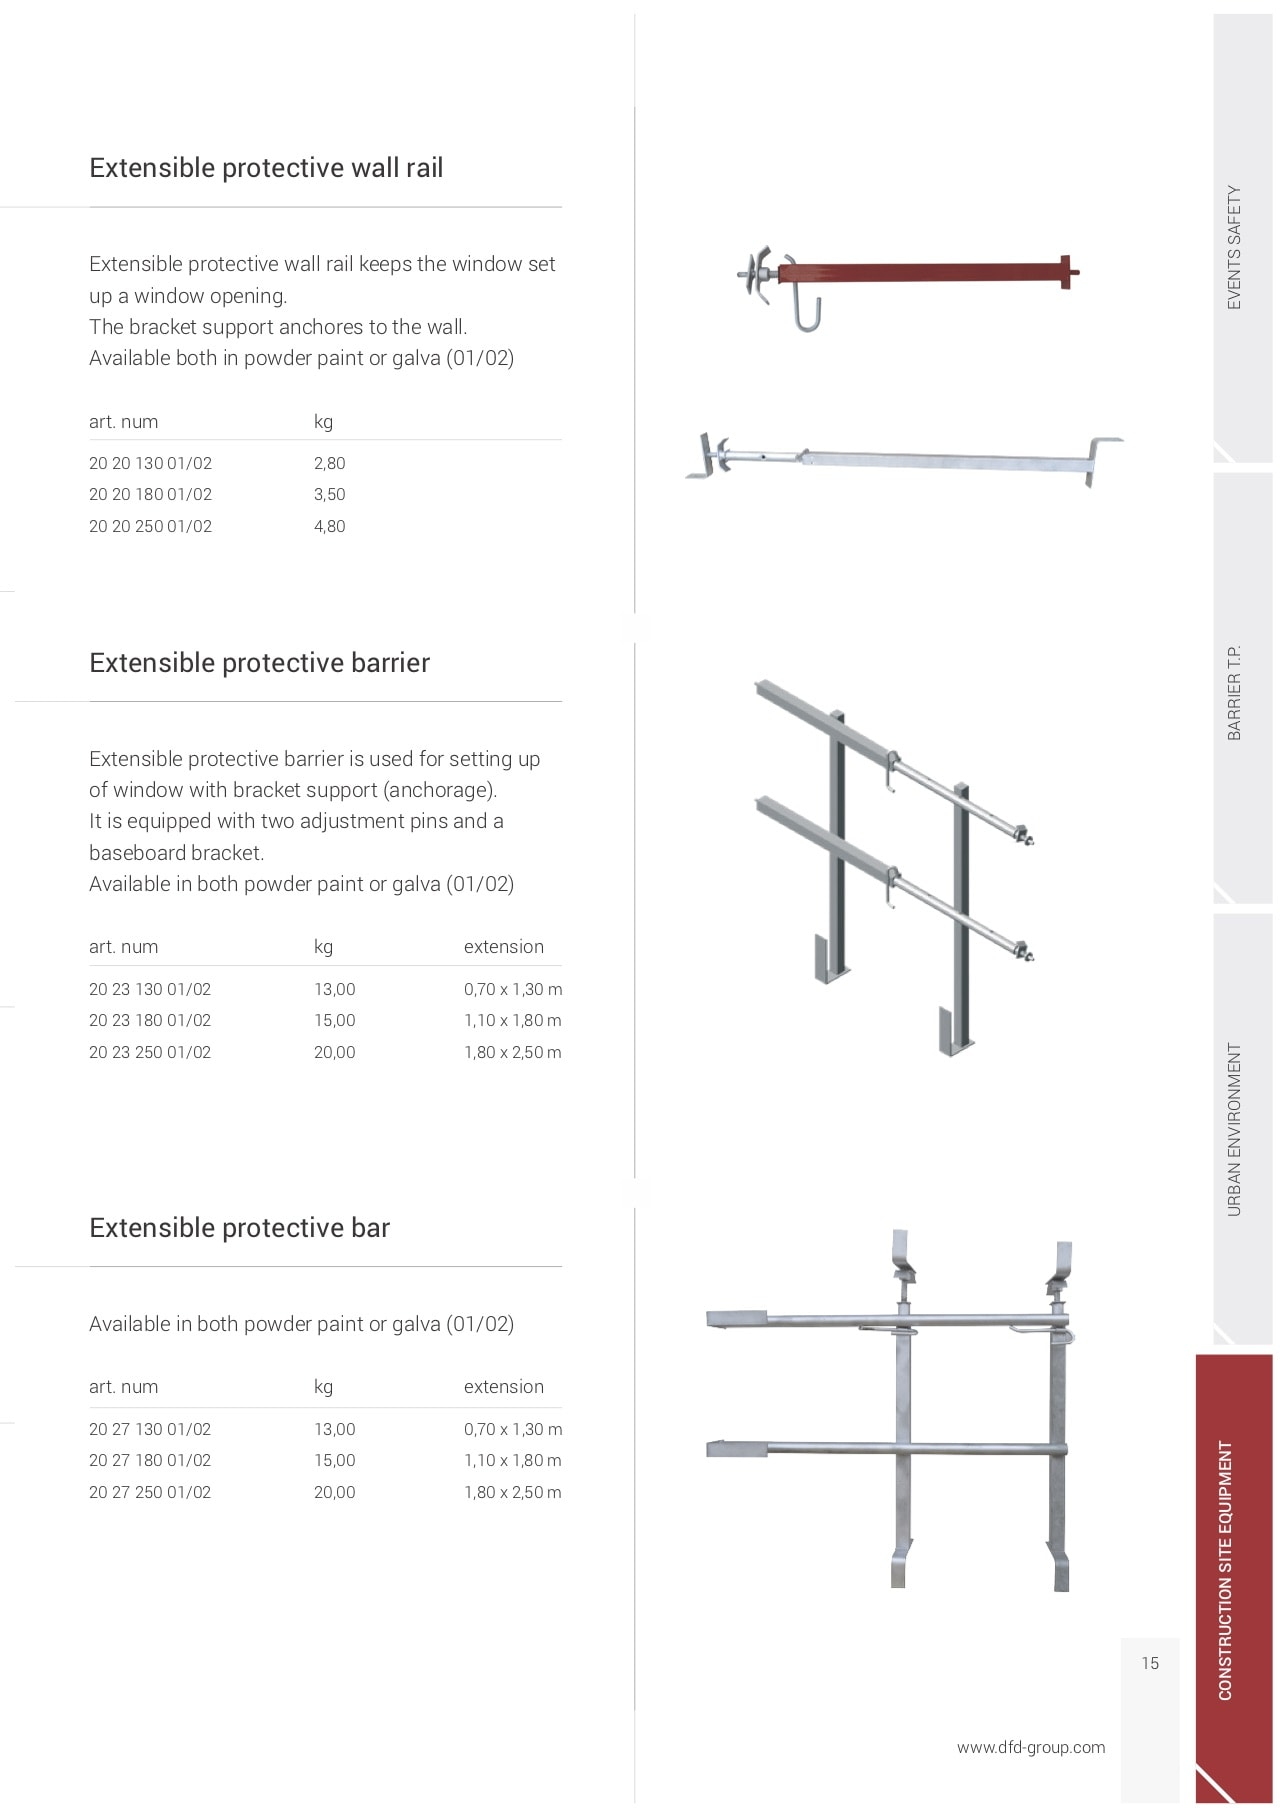 DfD_catalogue_construction_products_3